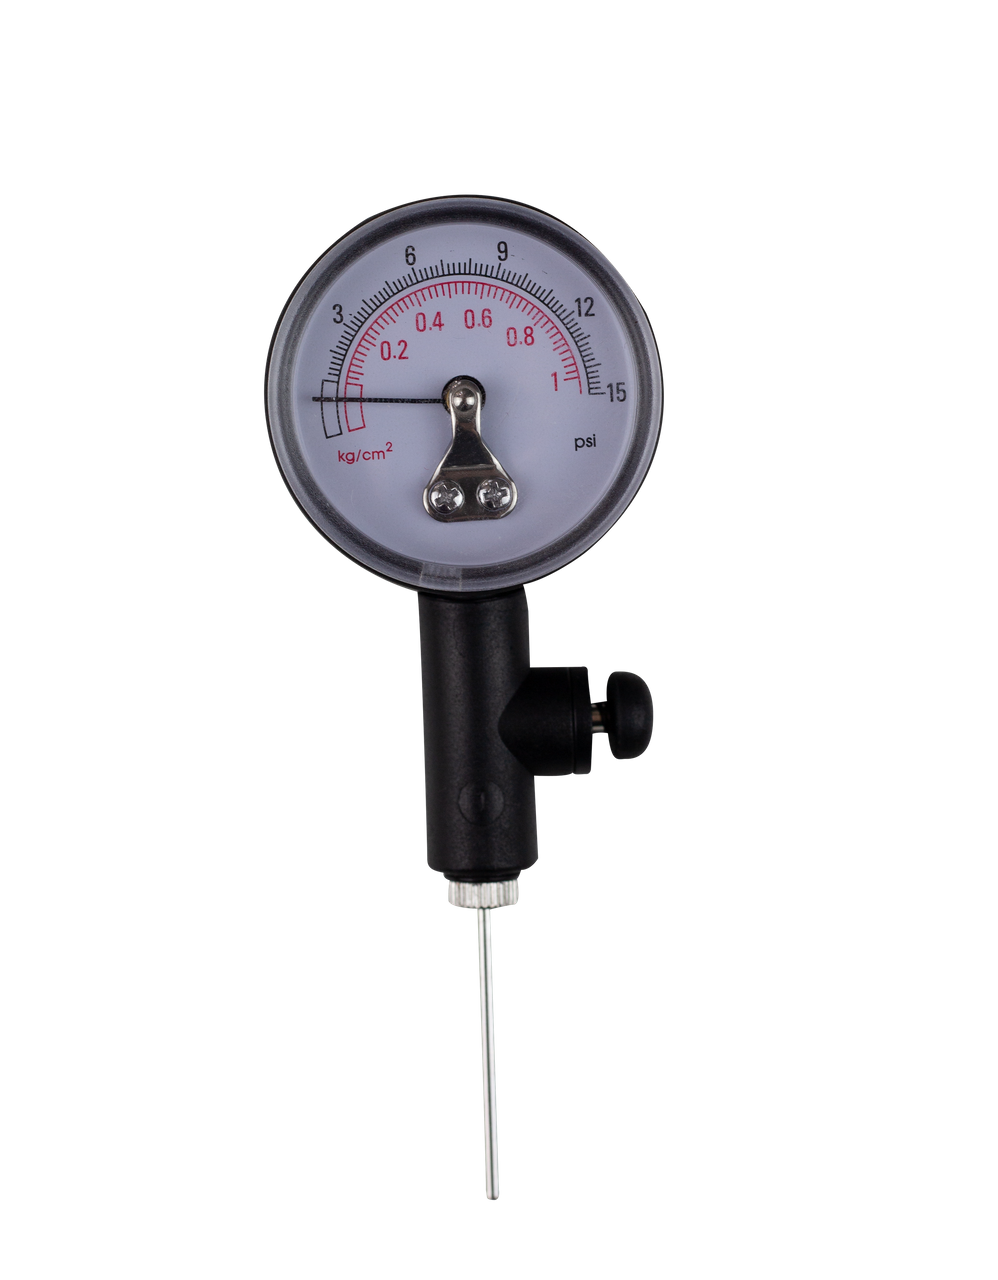 ELF Sports analogue air pressure gauge for footballs